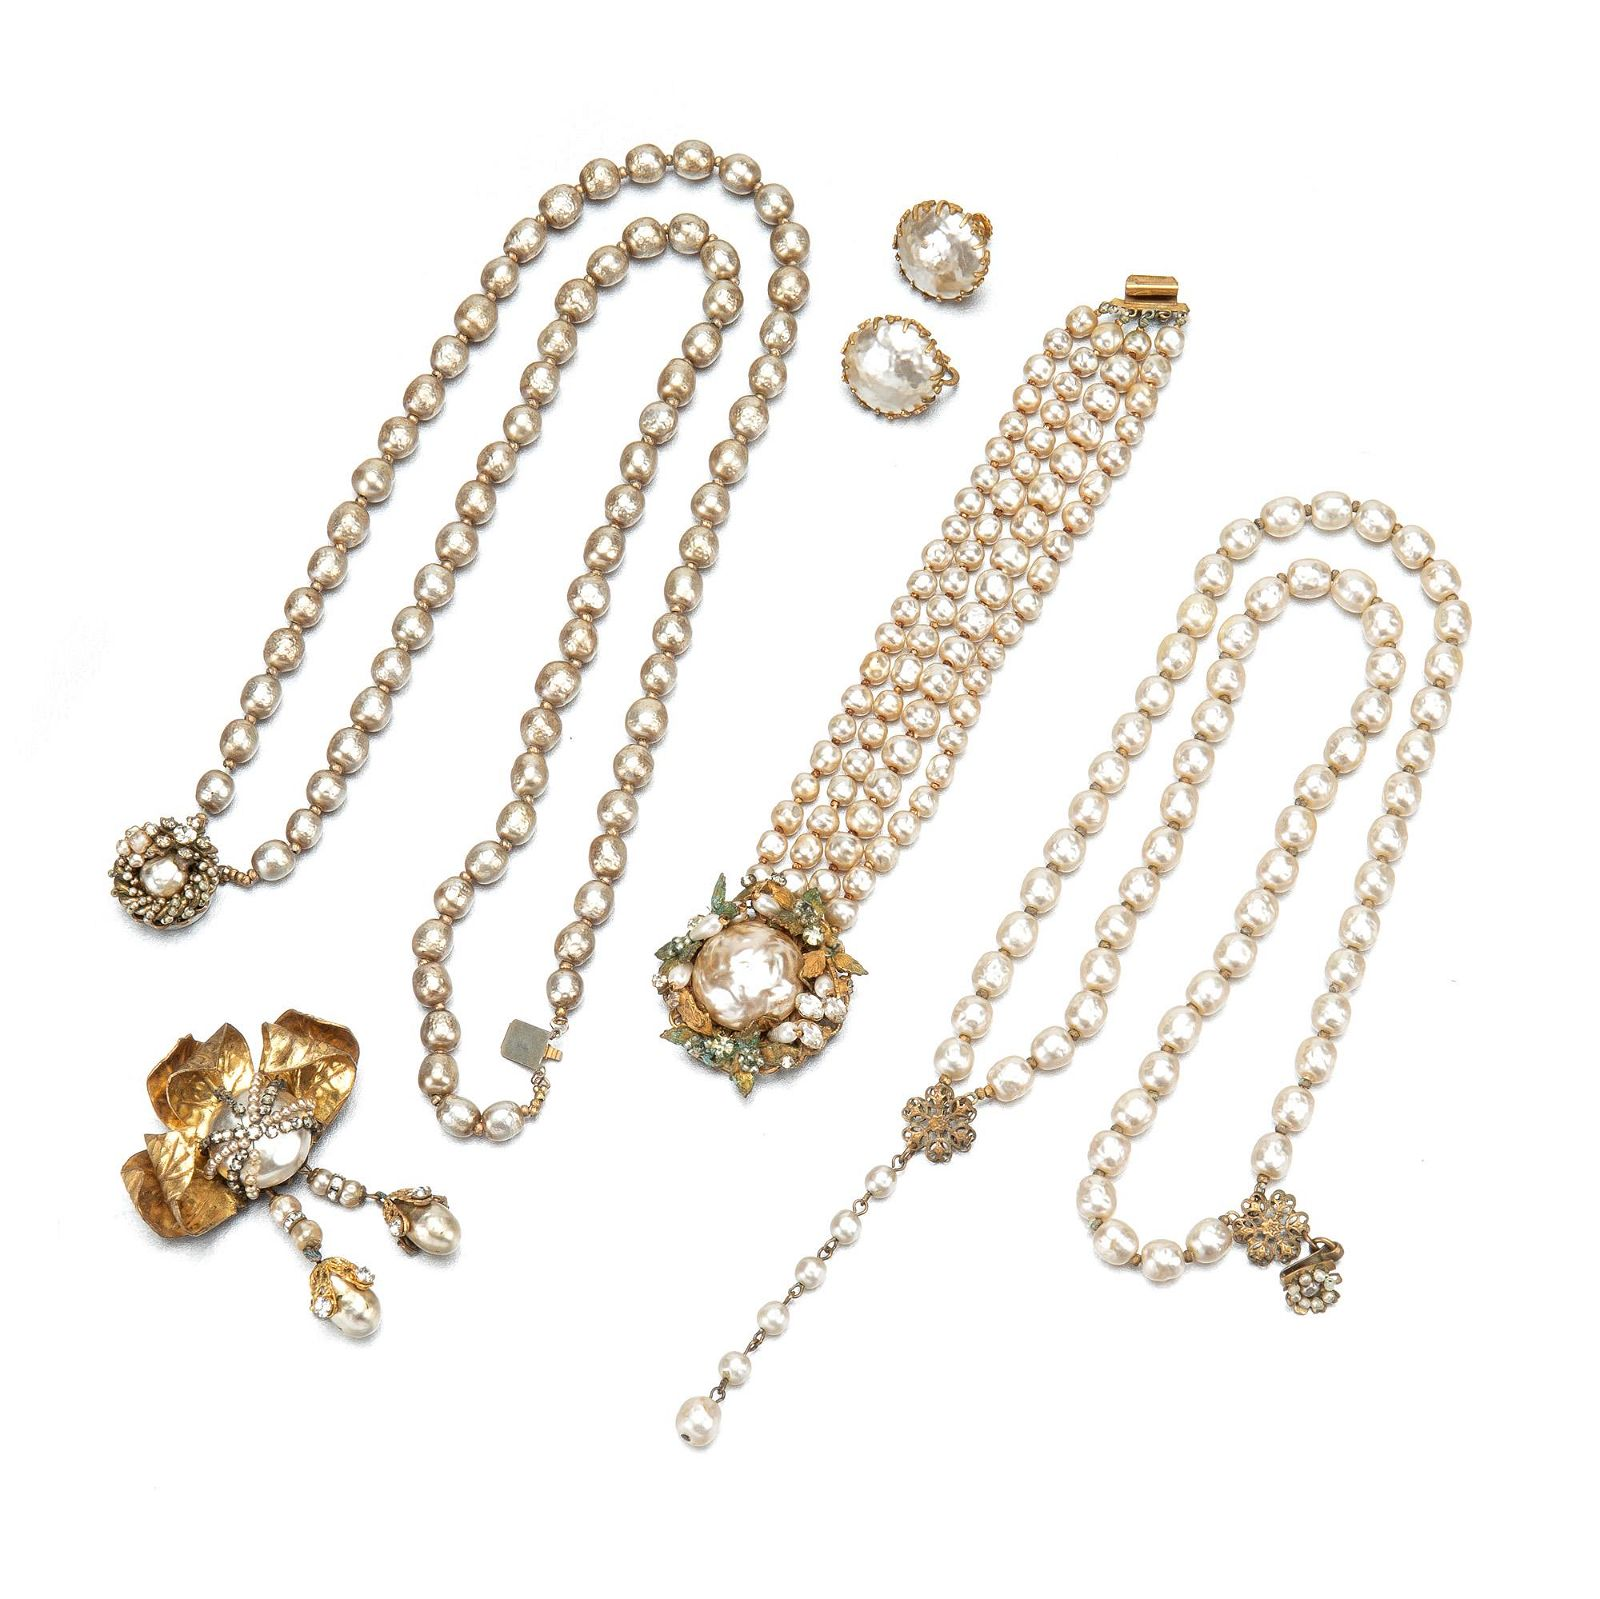 A group of costume jewelry, including Miriam Haskell